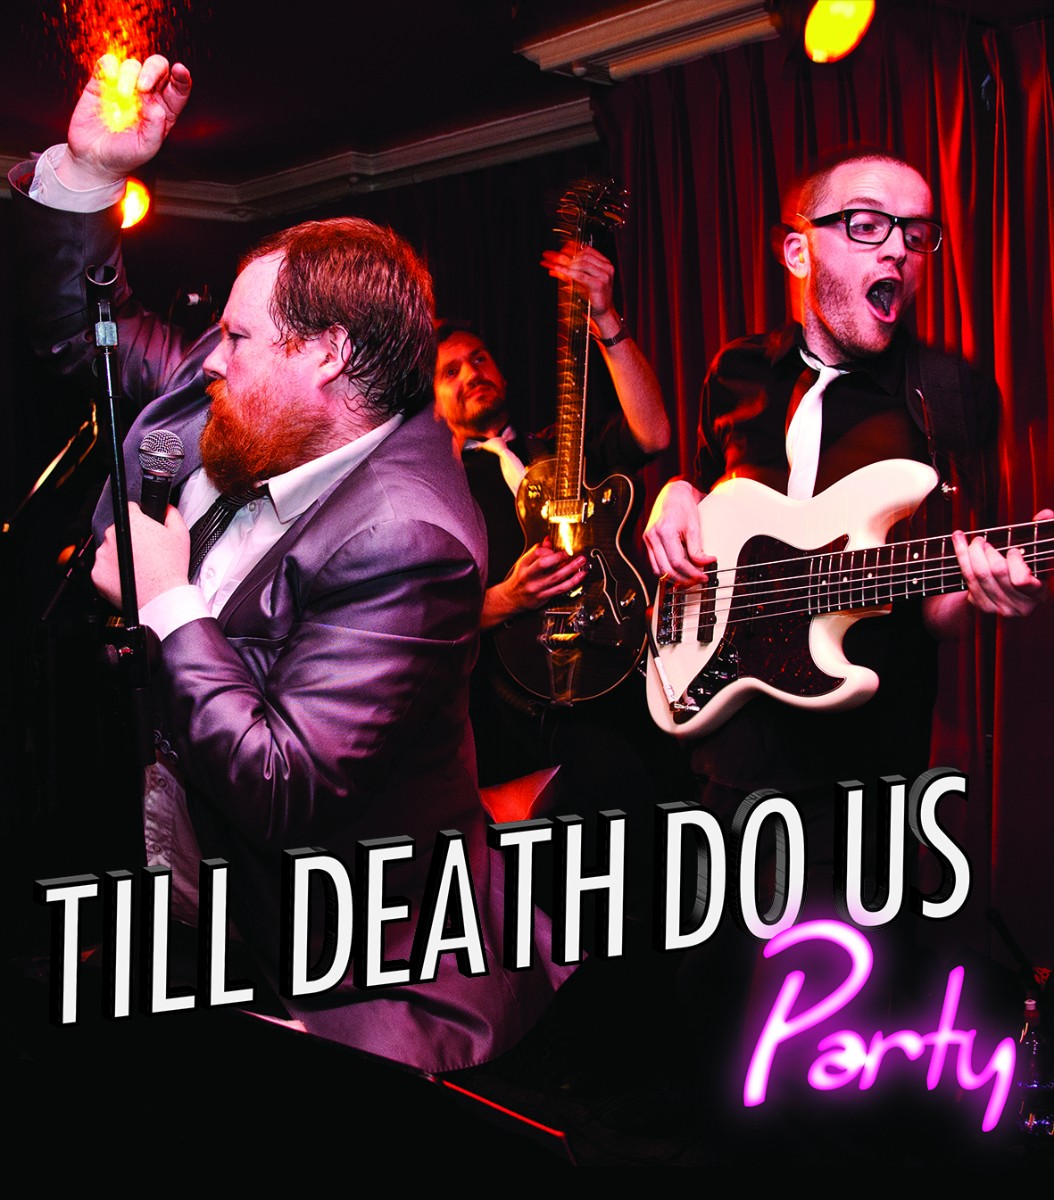 Wedding Bands - Till Death Do Us Party